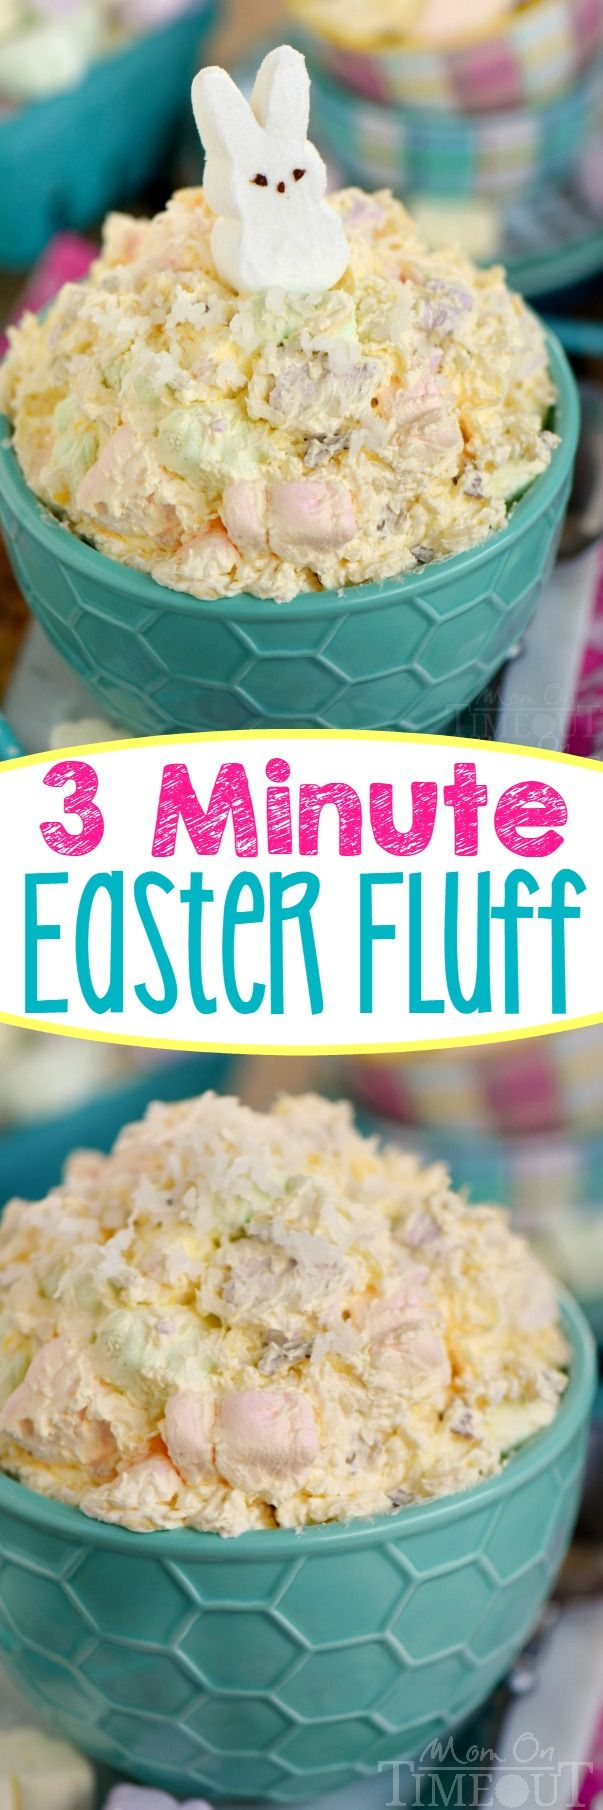 This easy dump and go, one-bowl Three Minute Easter Fluff is the perfect dessert to your Easter festivities! Perfect for baby showers too!